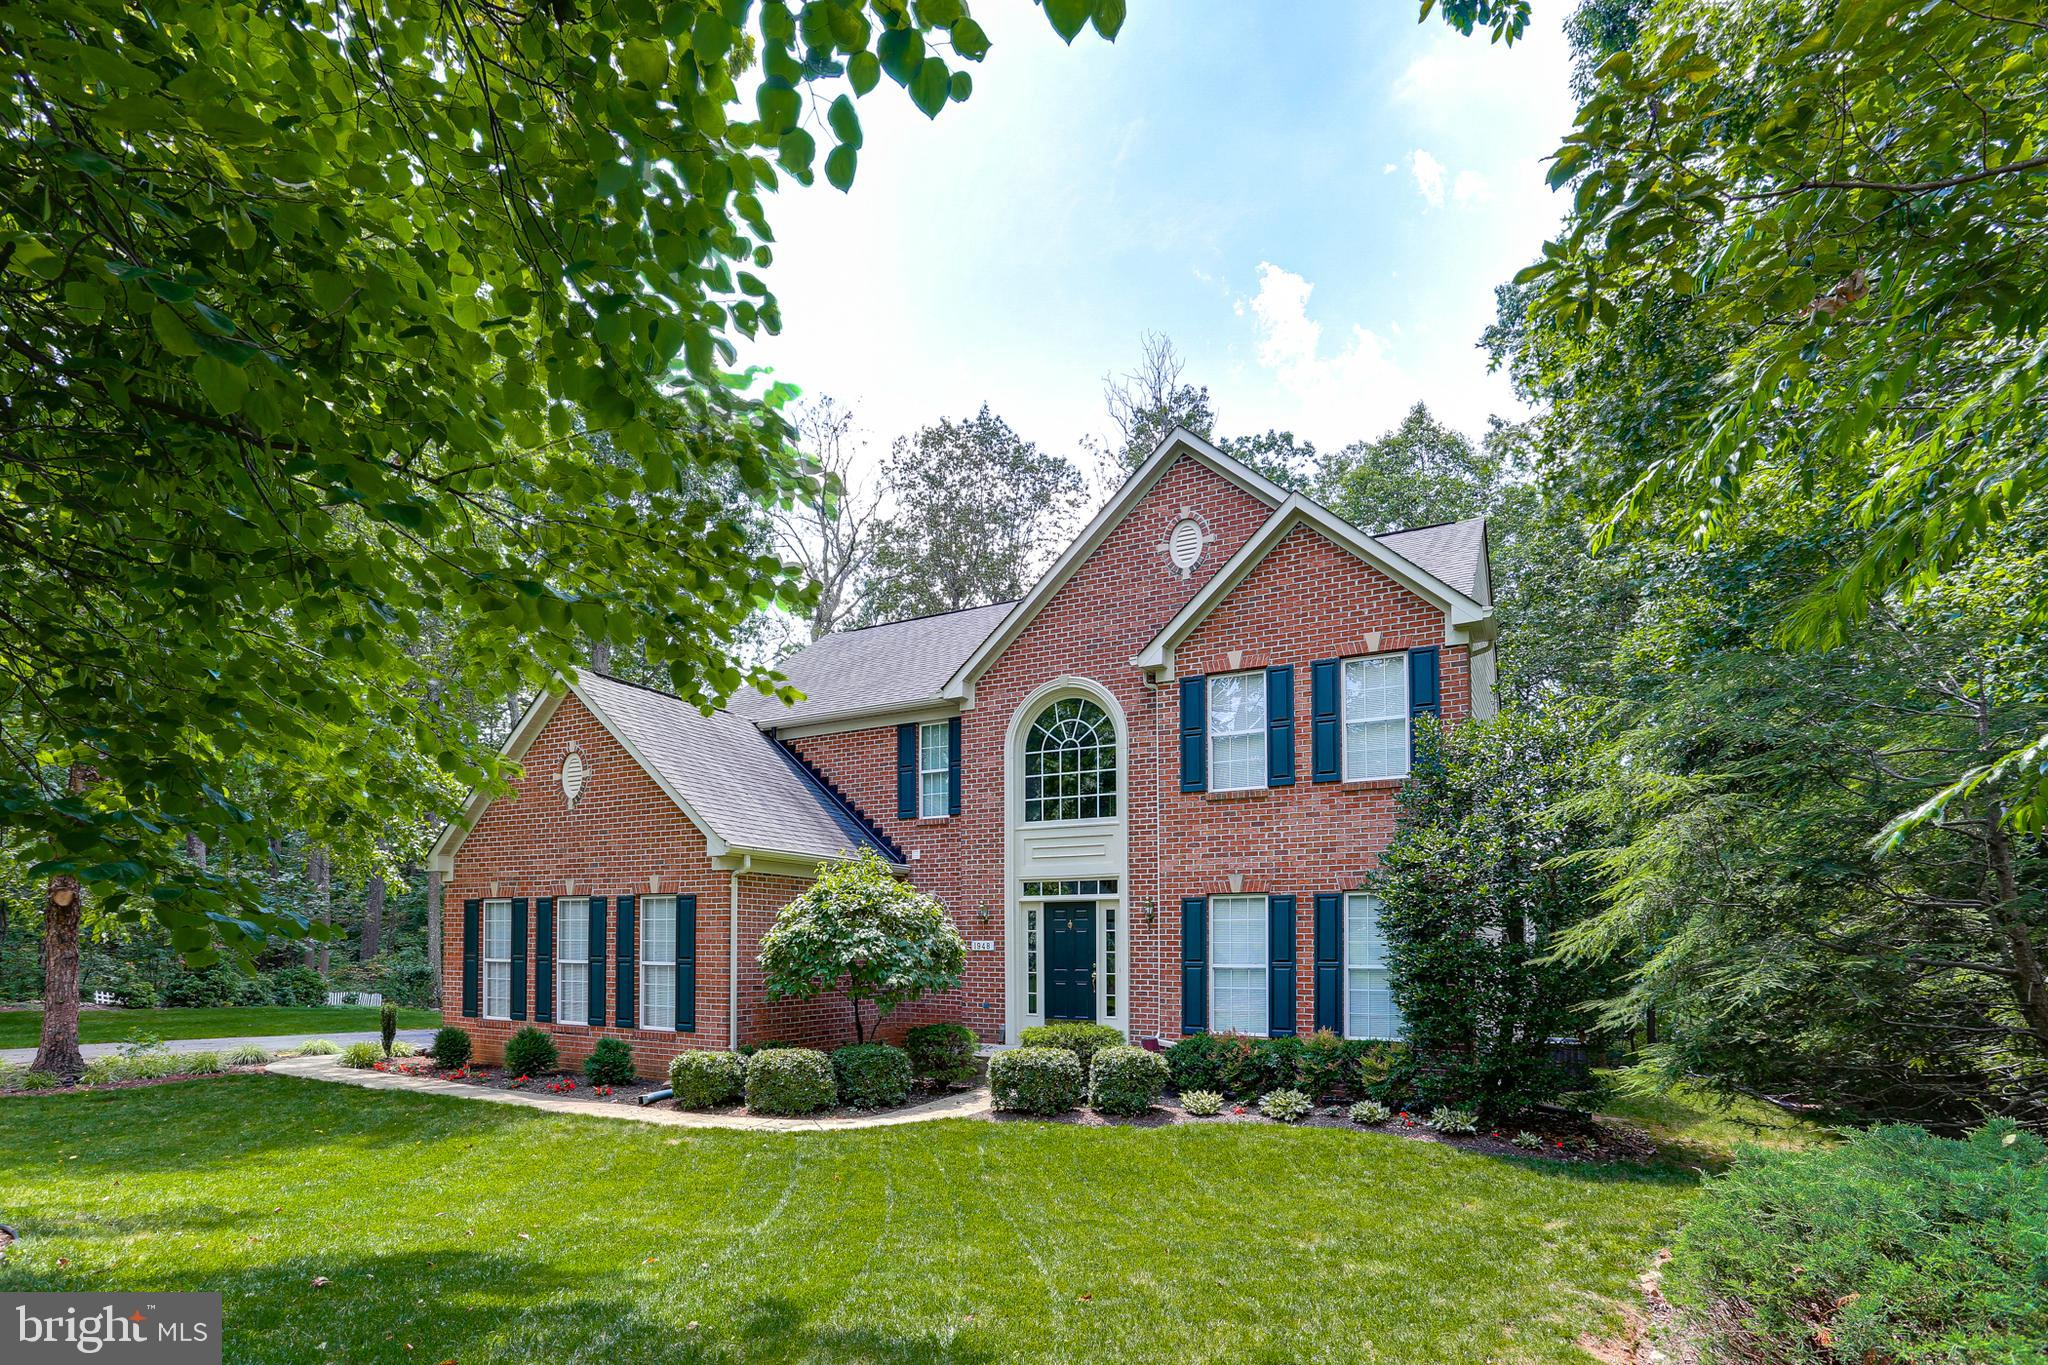 1948 SYCAMORE SPRING COURT, COOKSVILLE, MD 21723